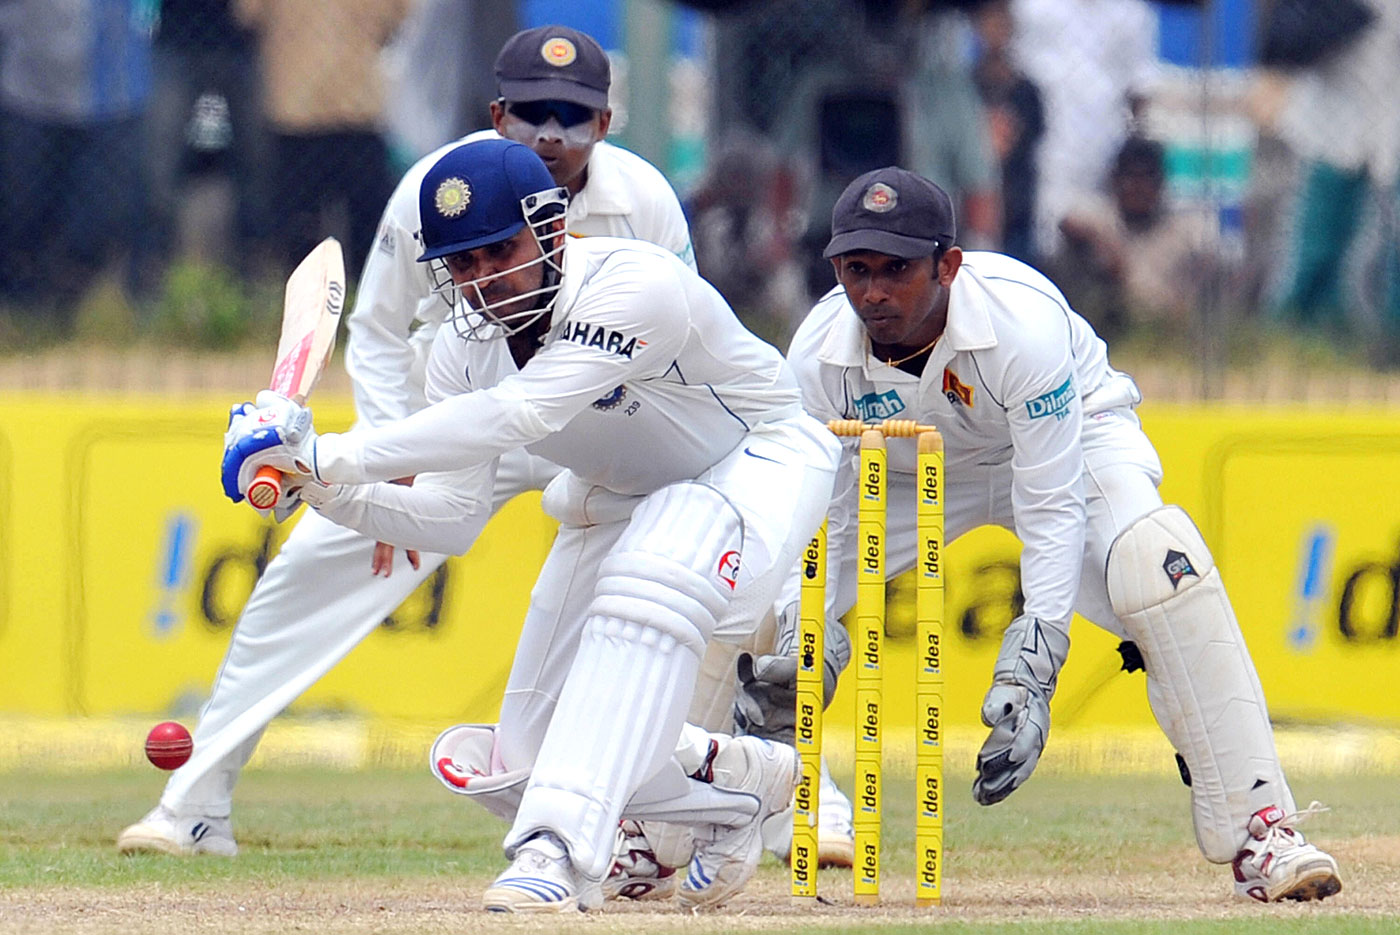 Virender Sehwag in Galle, 2008: the best match batting figures